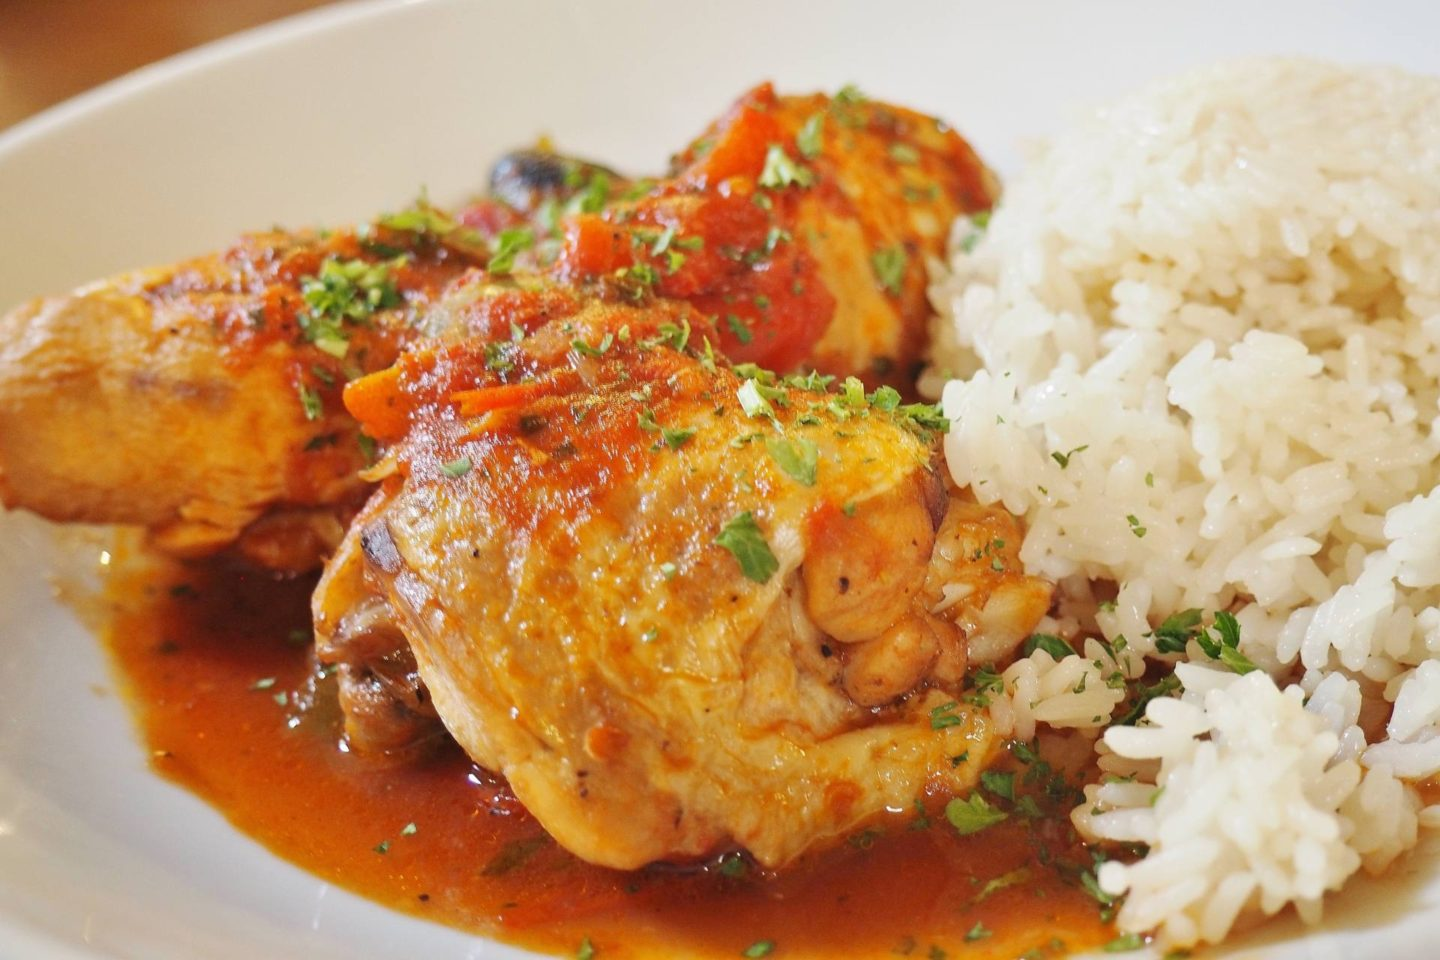 POULET BASQUAISE £13.50 Chicken served with tomatoes, peppers and olives, pilaf rice